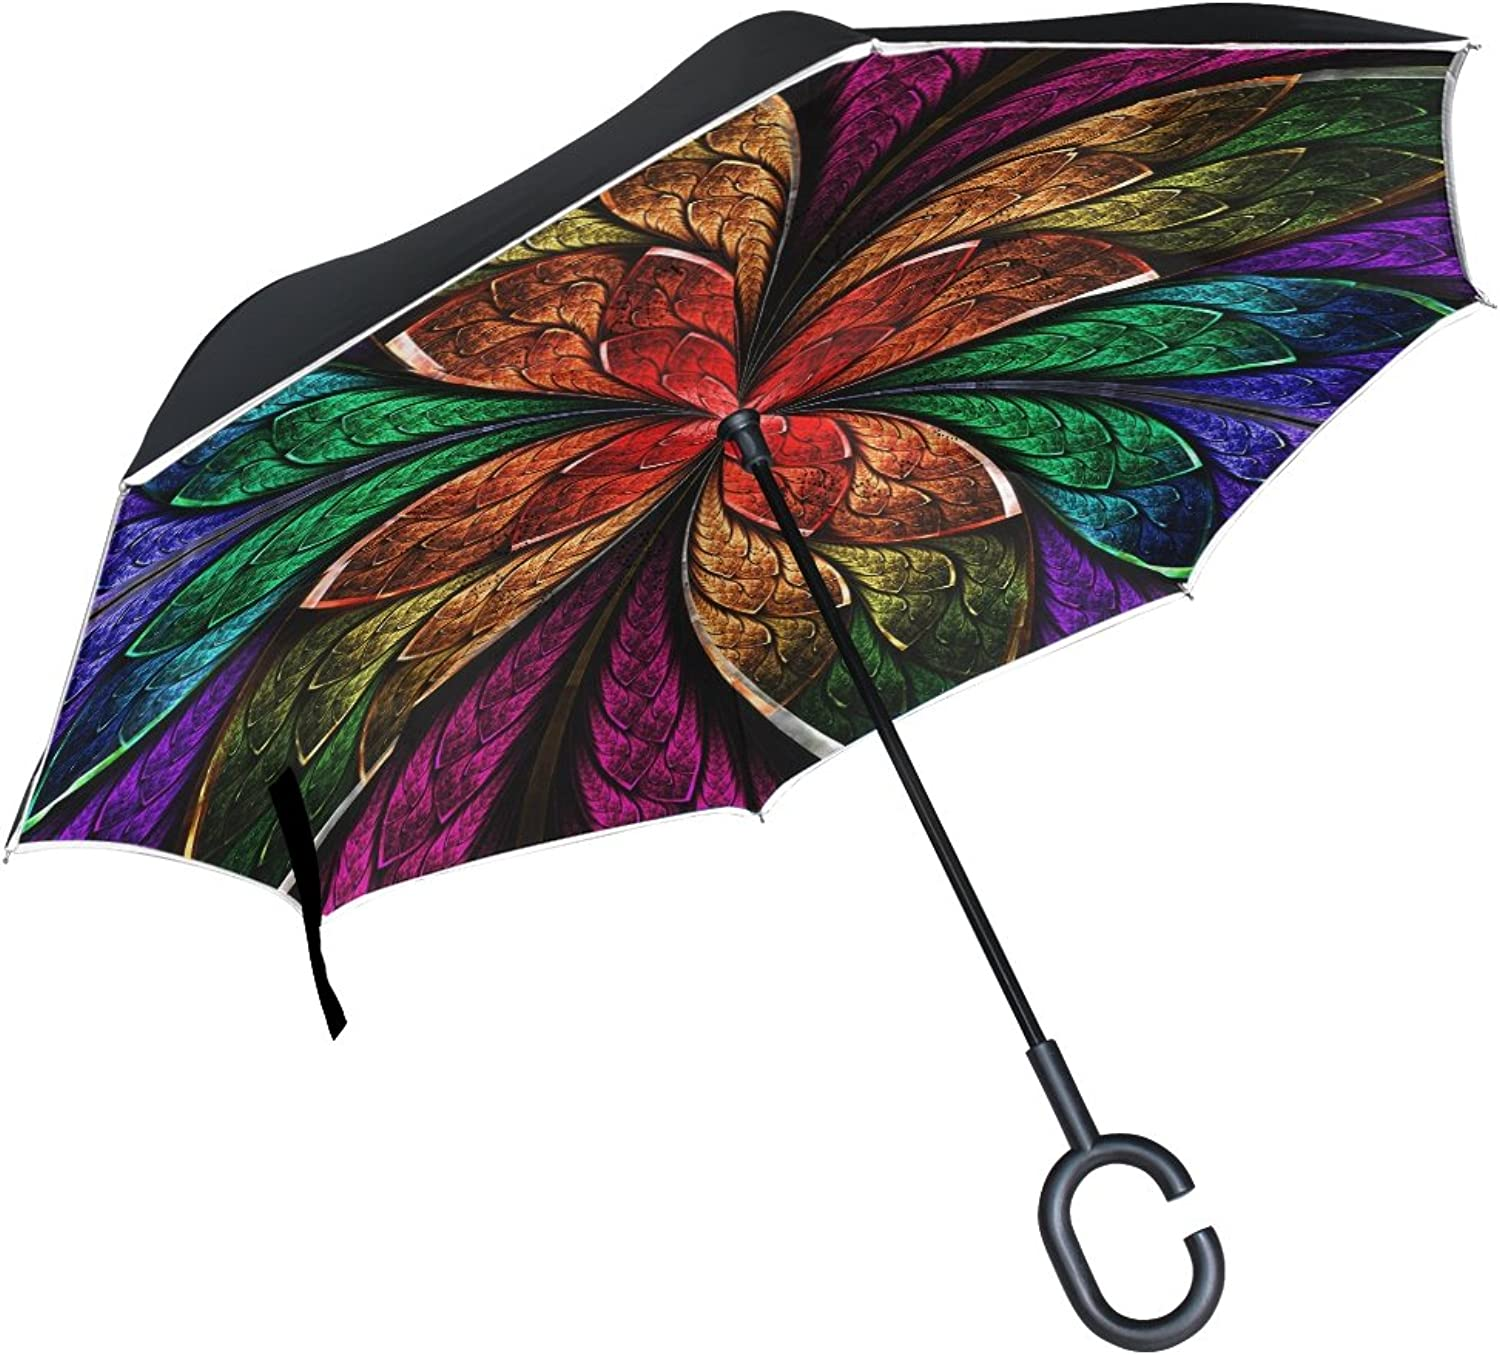 MASSIKOA blueee Green And Red Fractal Flower Ingreened Double Layer Windproof Straight Umbrellas Inside-Out Folding Umbrella with C-Shaped Handle for Car Use